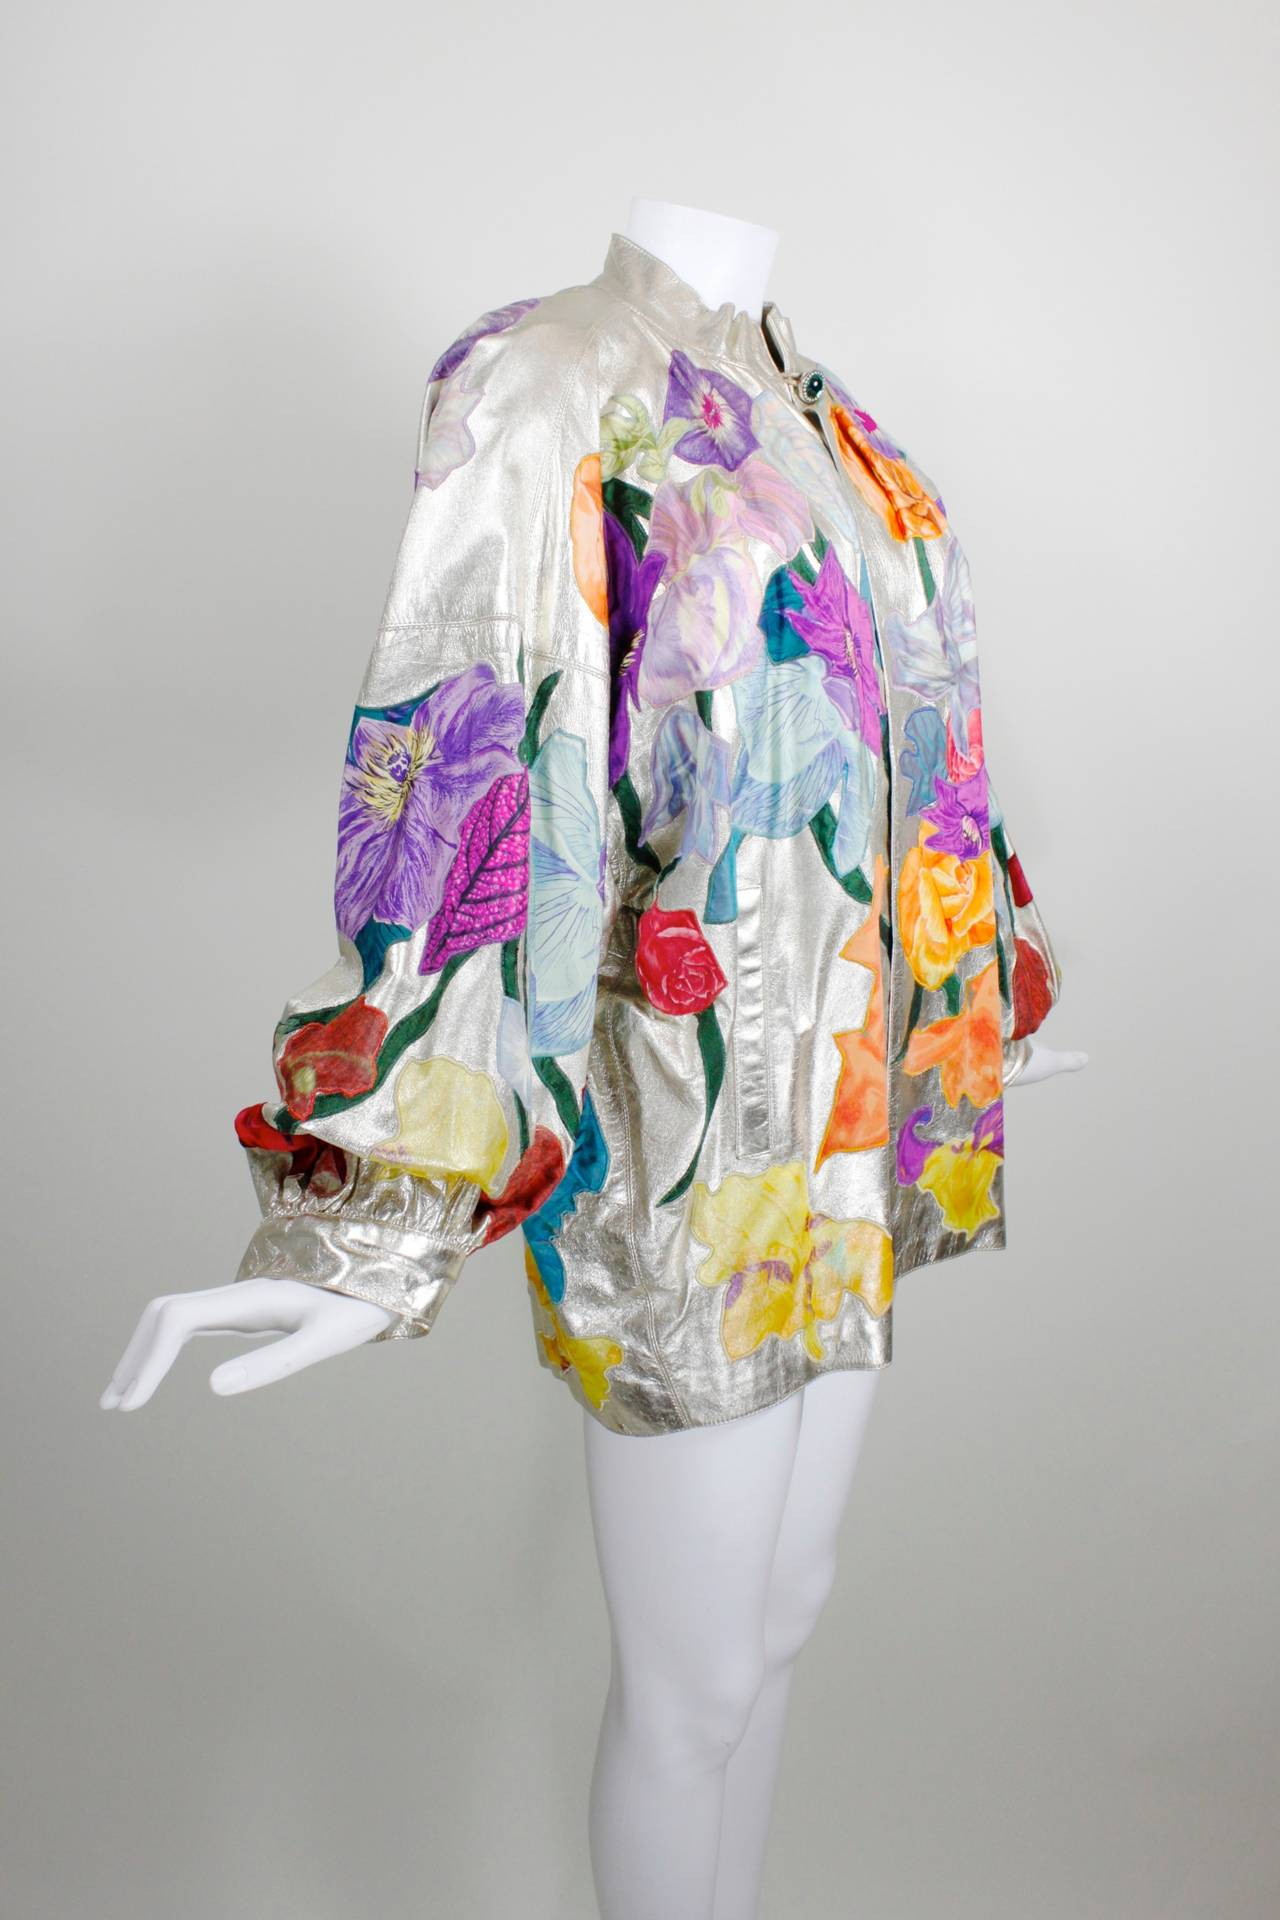 YSL Couture Silver Leather with Rainbow Floral Appliqué Jacket 2